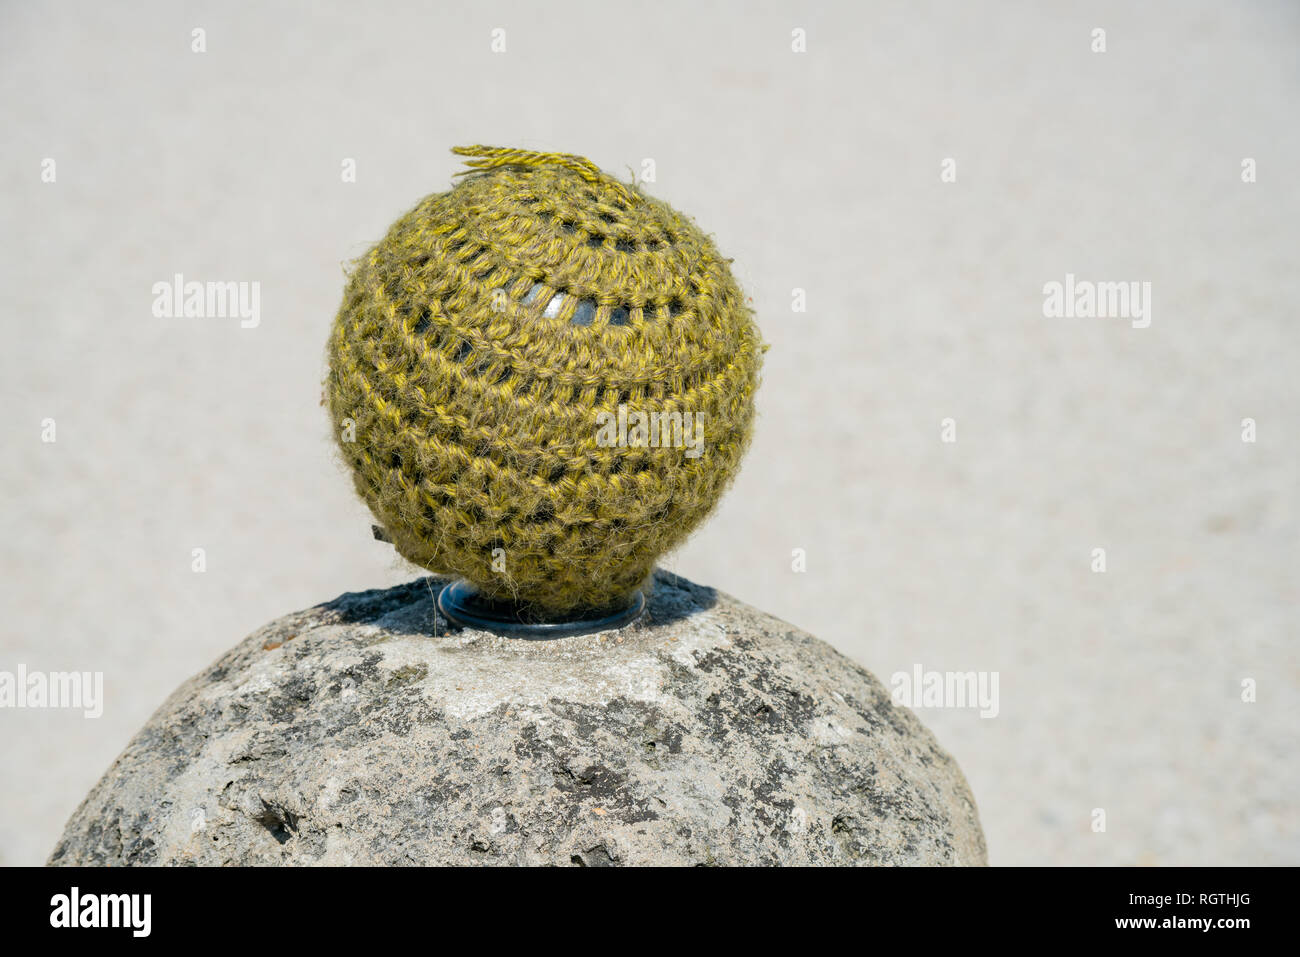 Interesting stone ball wrap in wool near Versailles at France - Stock Image